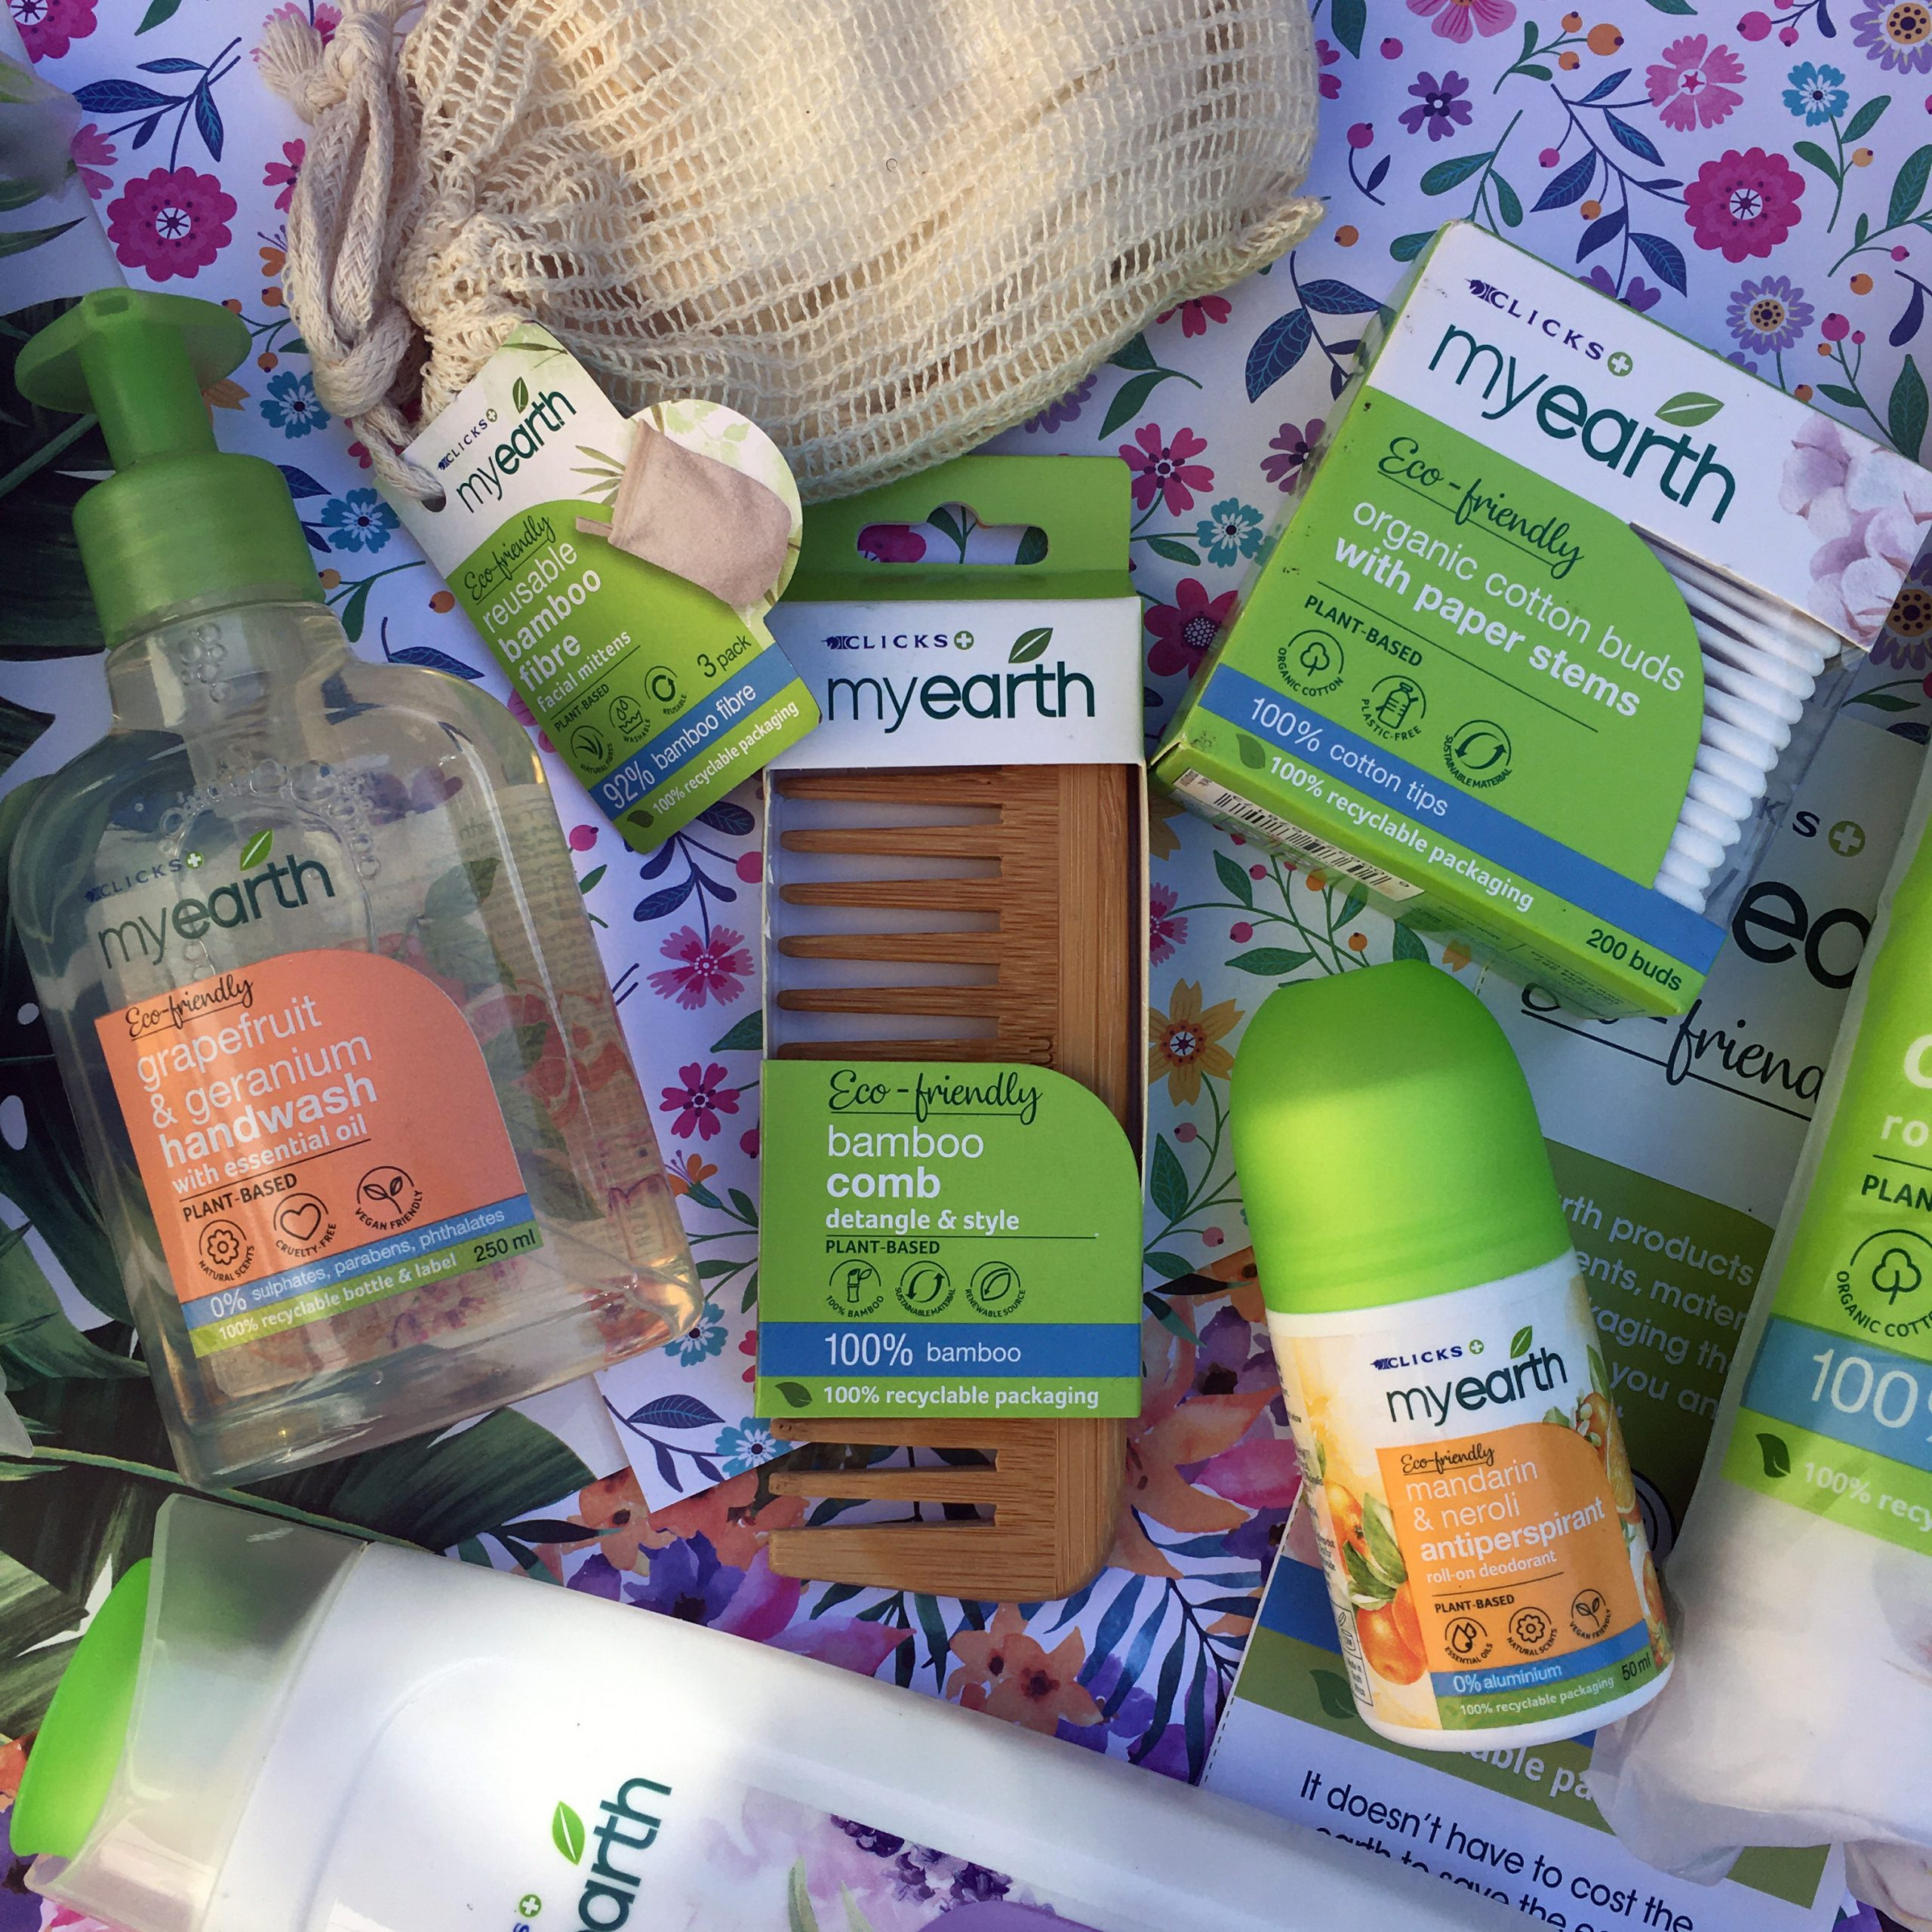 Clicks launches MyEarth, a new eco-friendly range you'll love 1